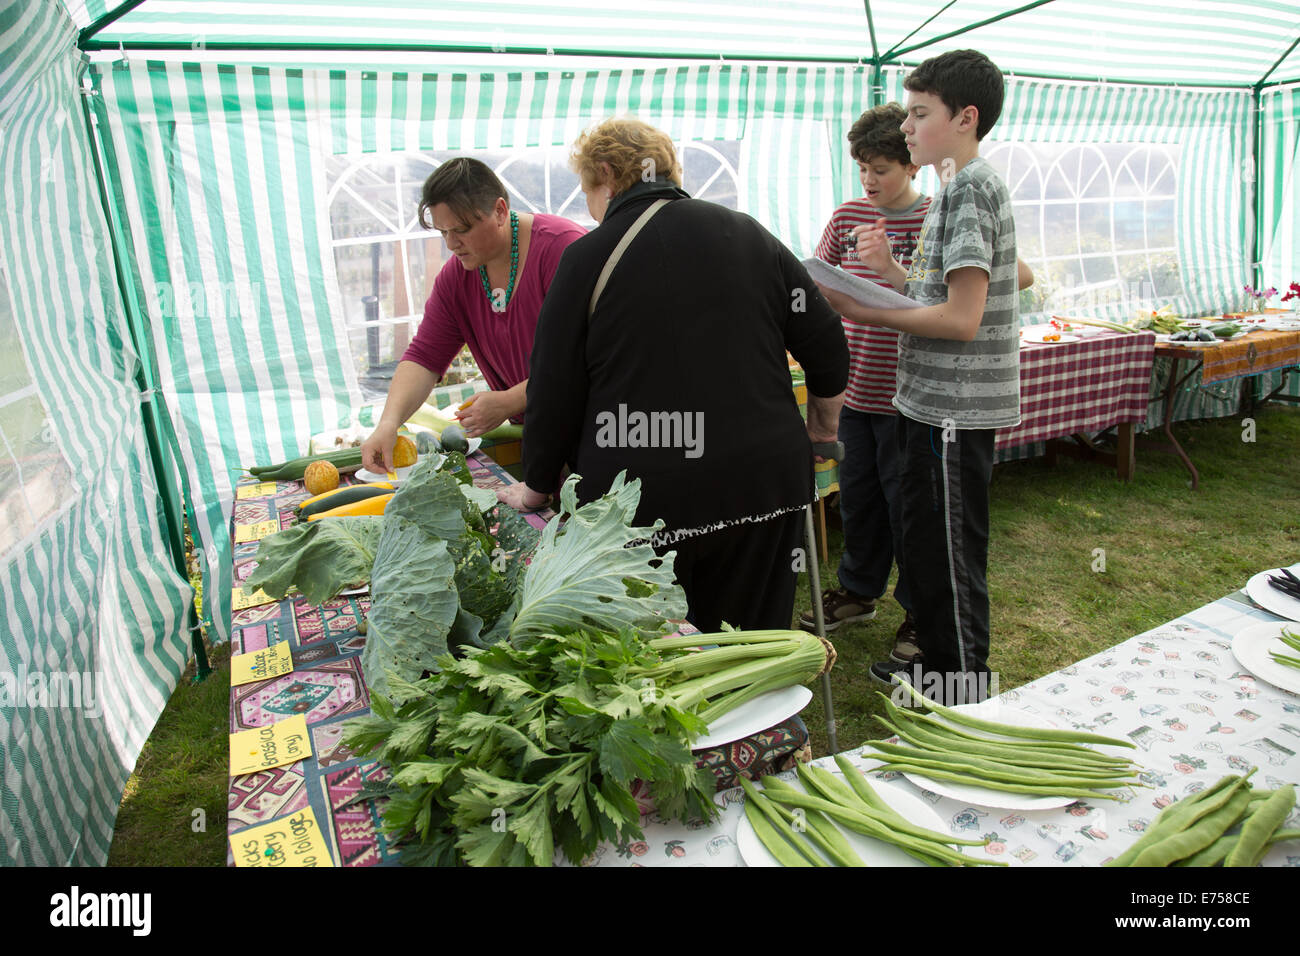 Allotment in South London - Stock Image